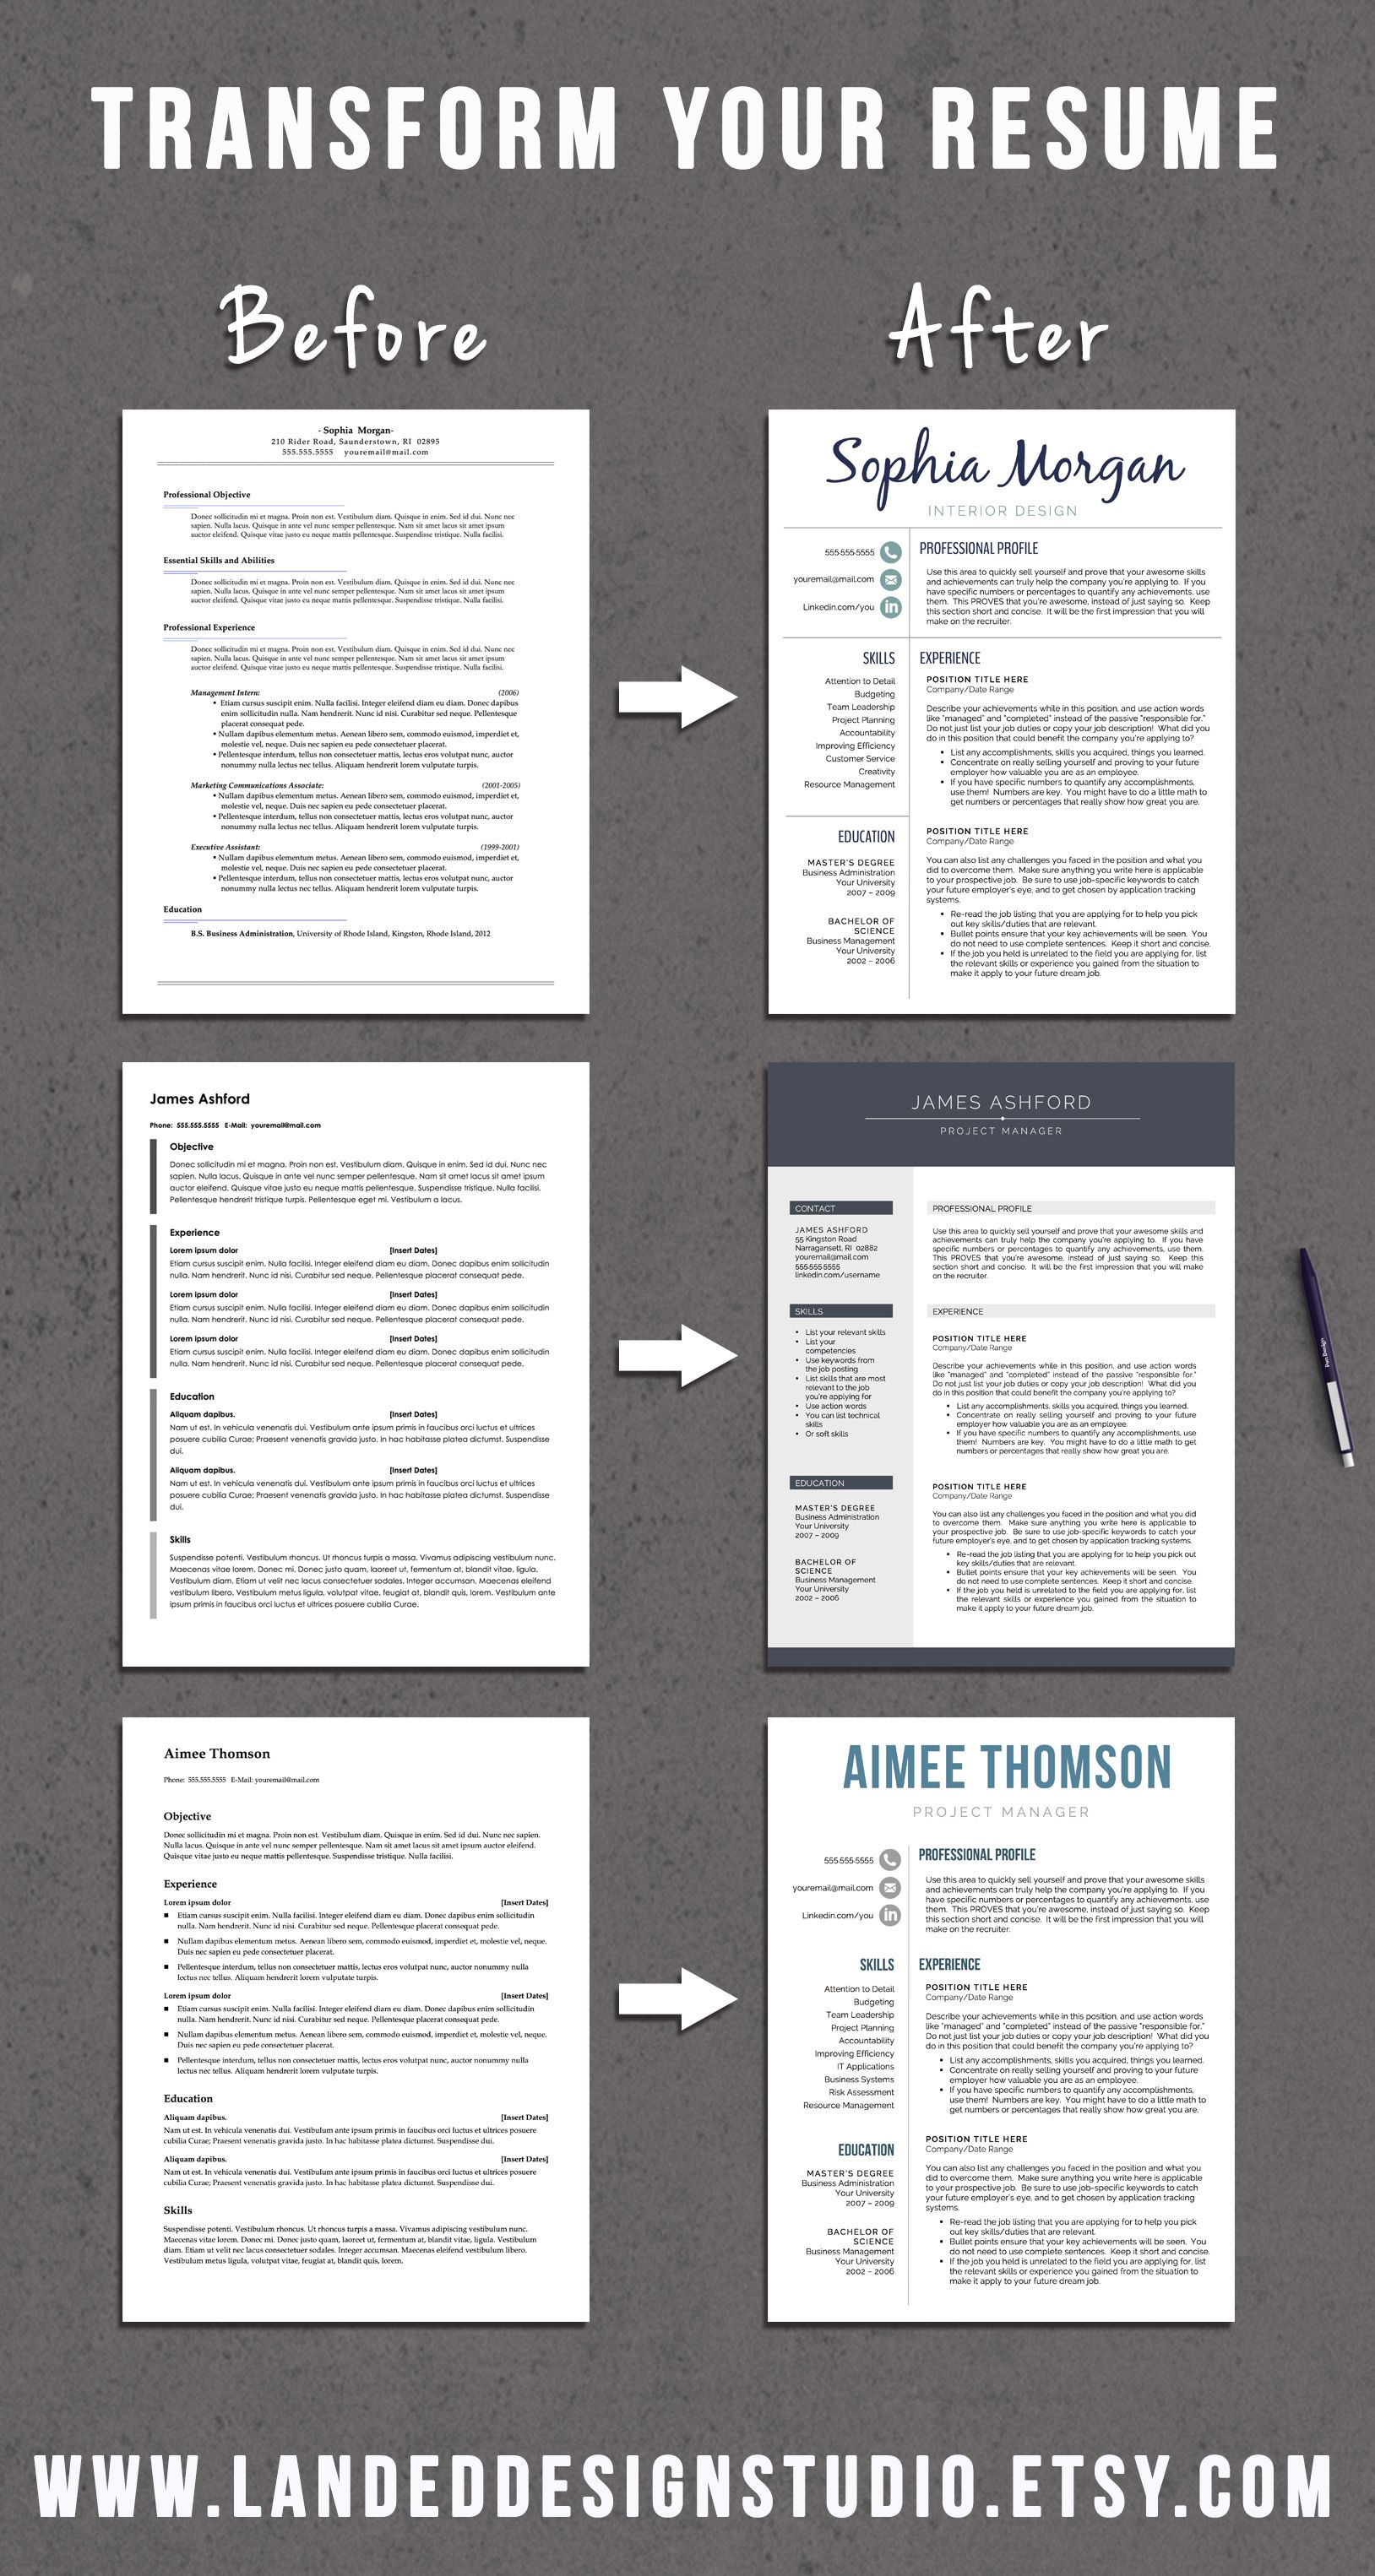 Make your resume awesome. Get advice, get a critique, get a new ...